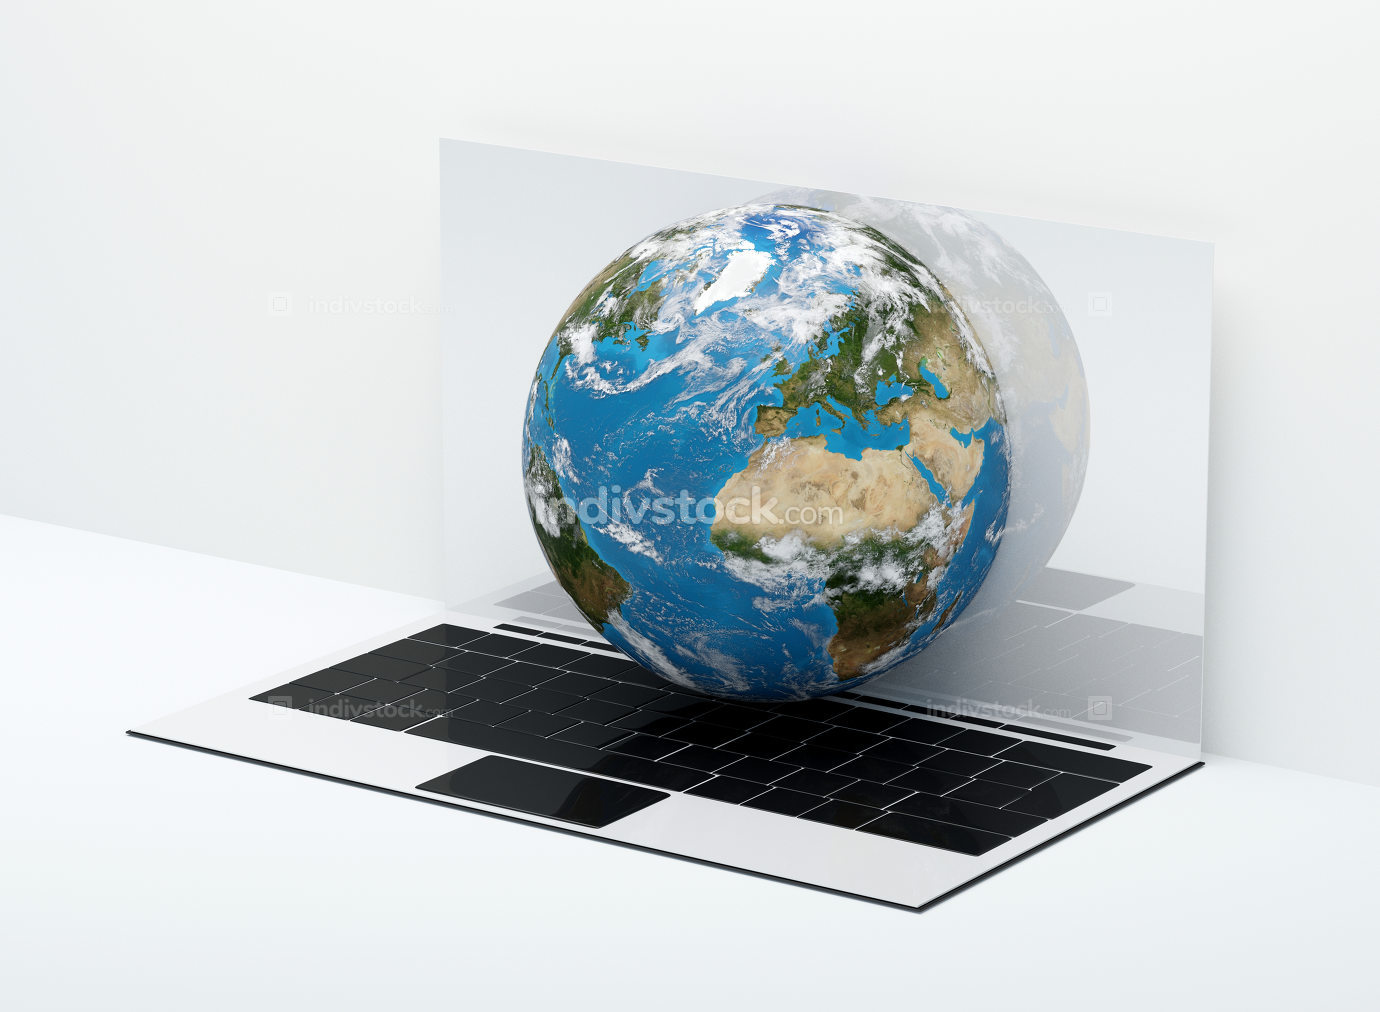 the planet earth out of computer. elements of this image furnish